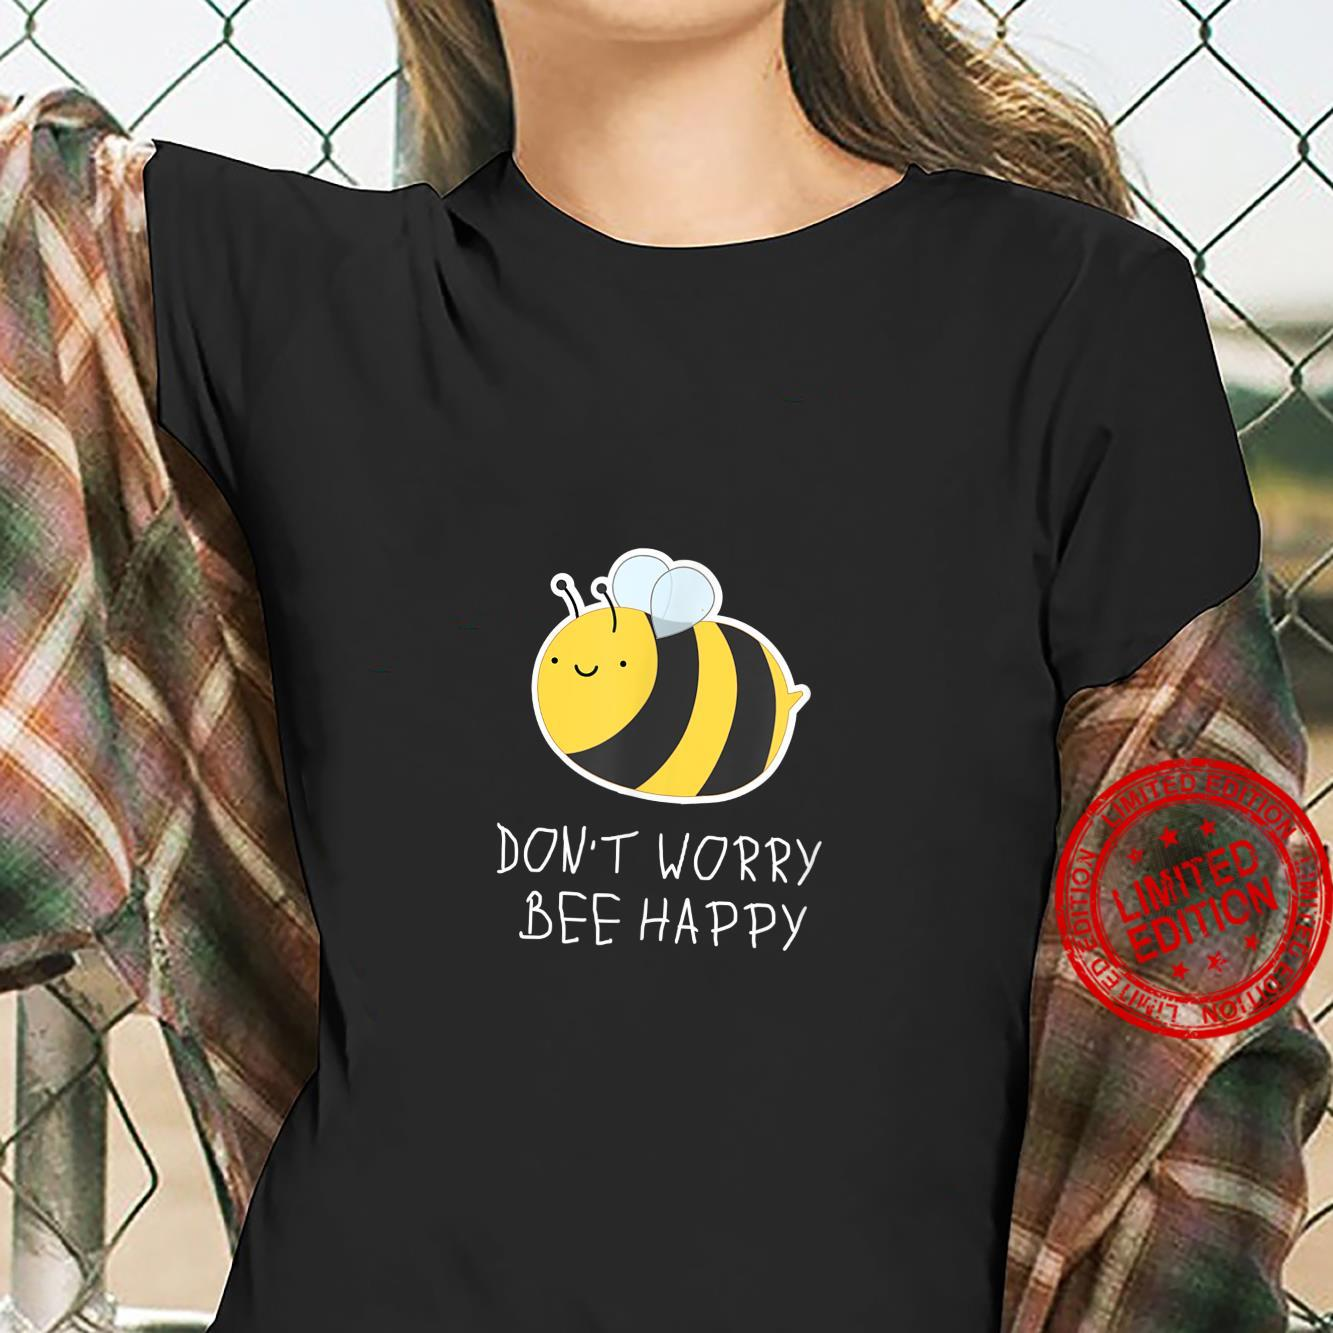 DON'T WORRY, BEE HAPPY fun positive vibes Shirt ladies tee